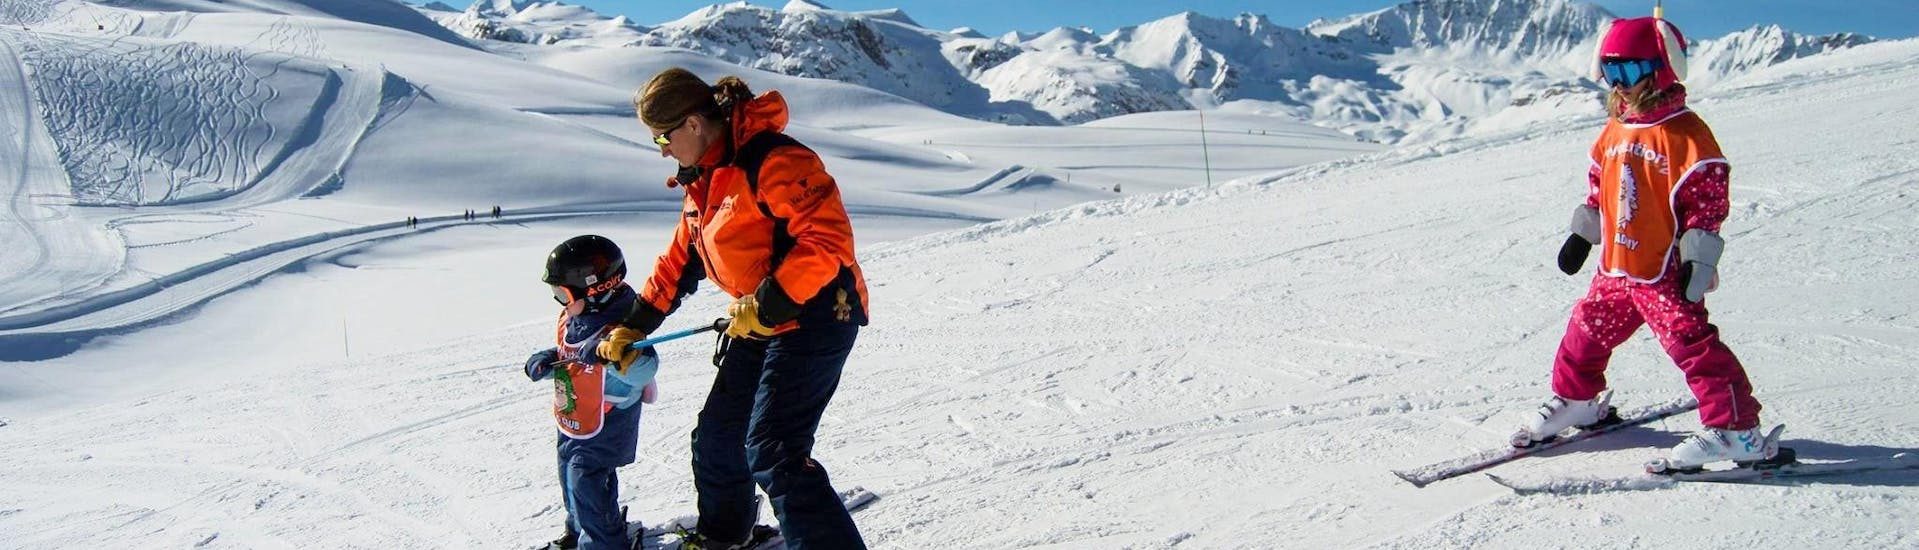 Young kids are learning how to ski with the help of their ski  instructor from the ski school Evolution 2 Val d'Isère during their Kids Ski Lessons (3-5 years) - Afternoon - Beginner.